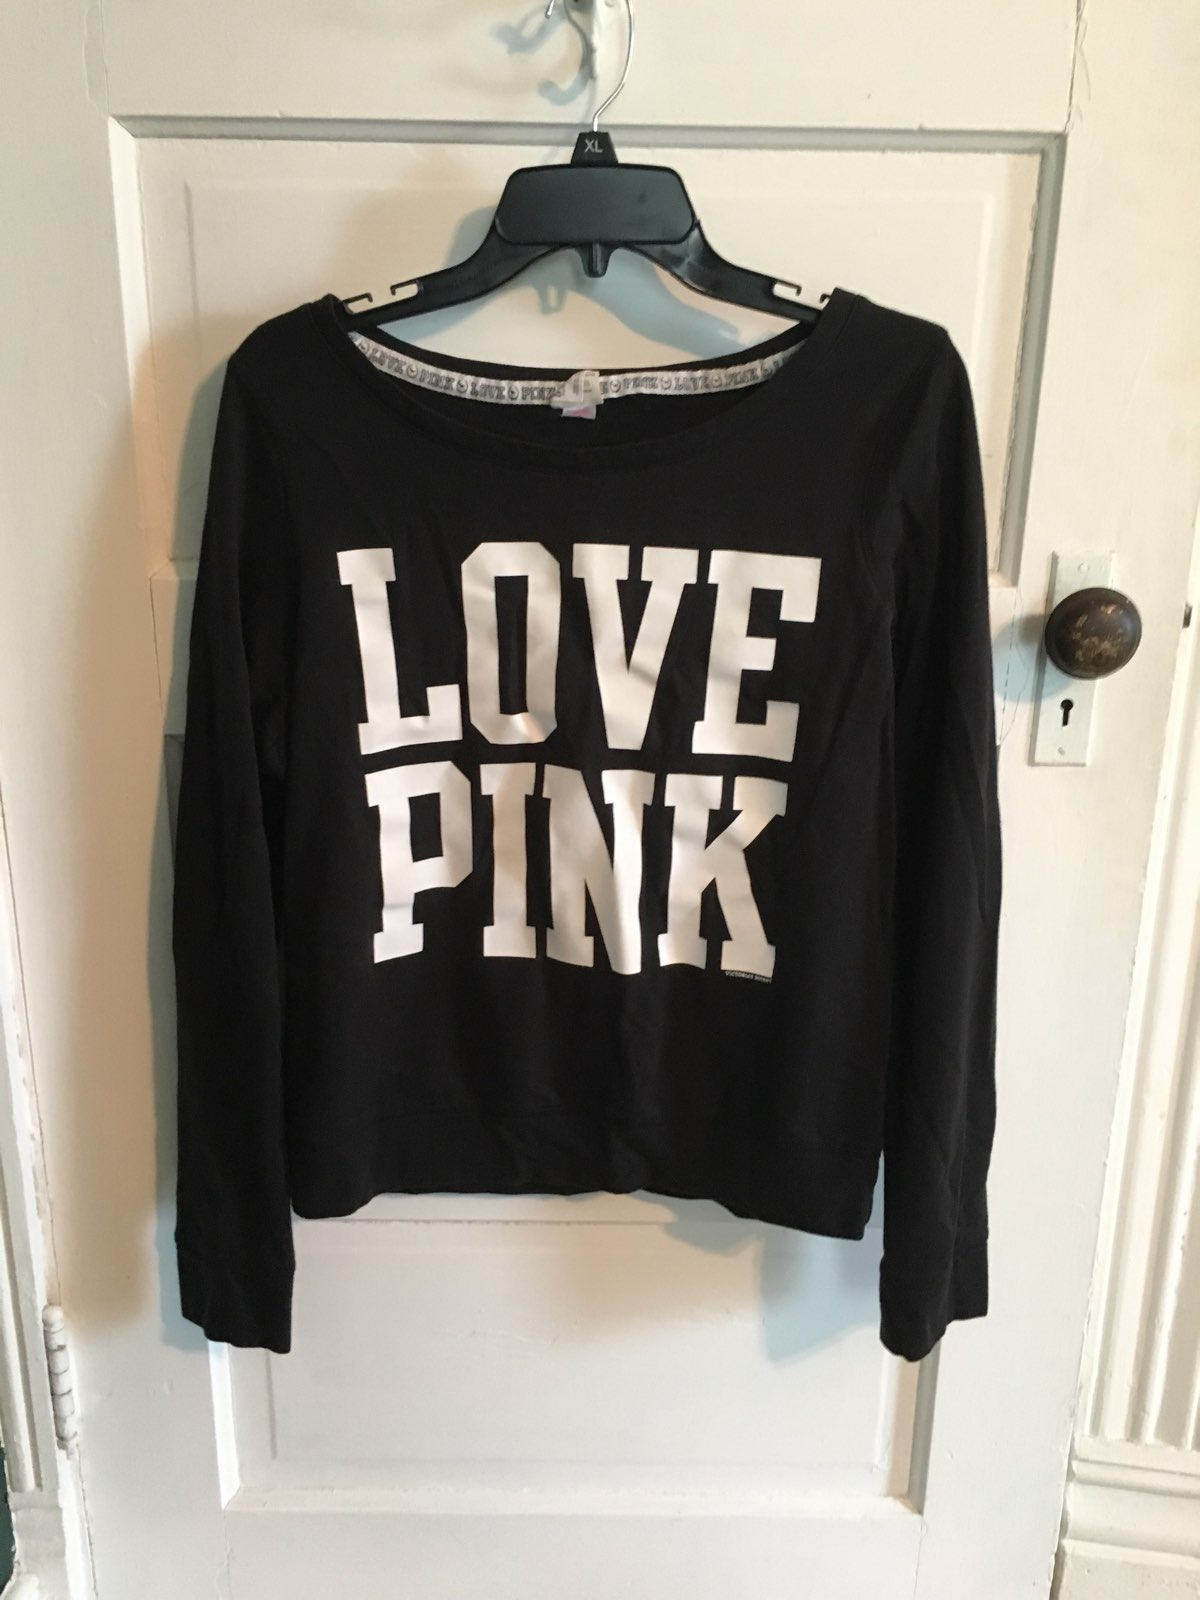 LOVE PINK Sweater - Mercari: BUY & SELL THINGS YOU LOVE